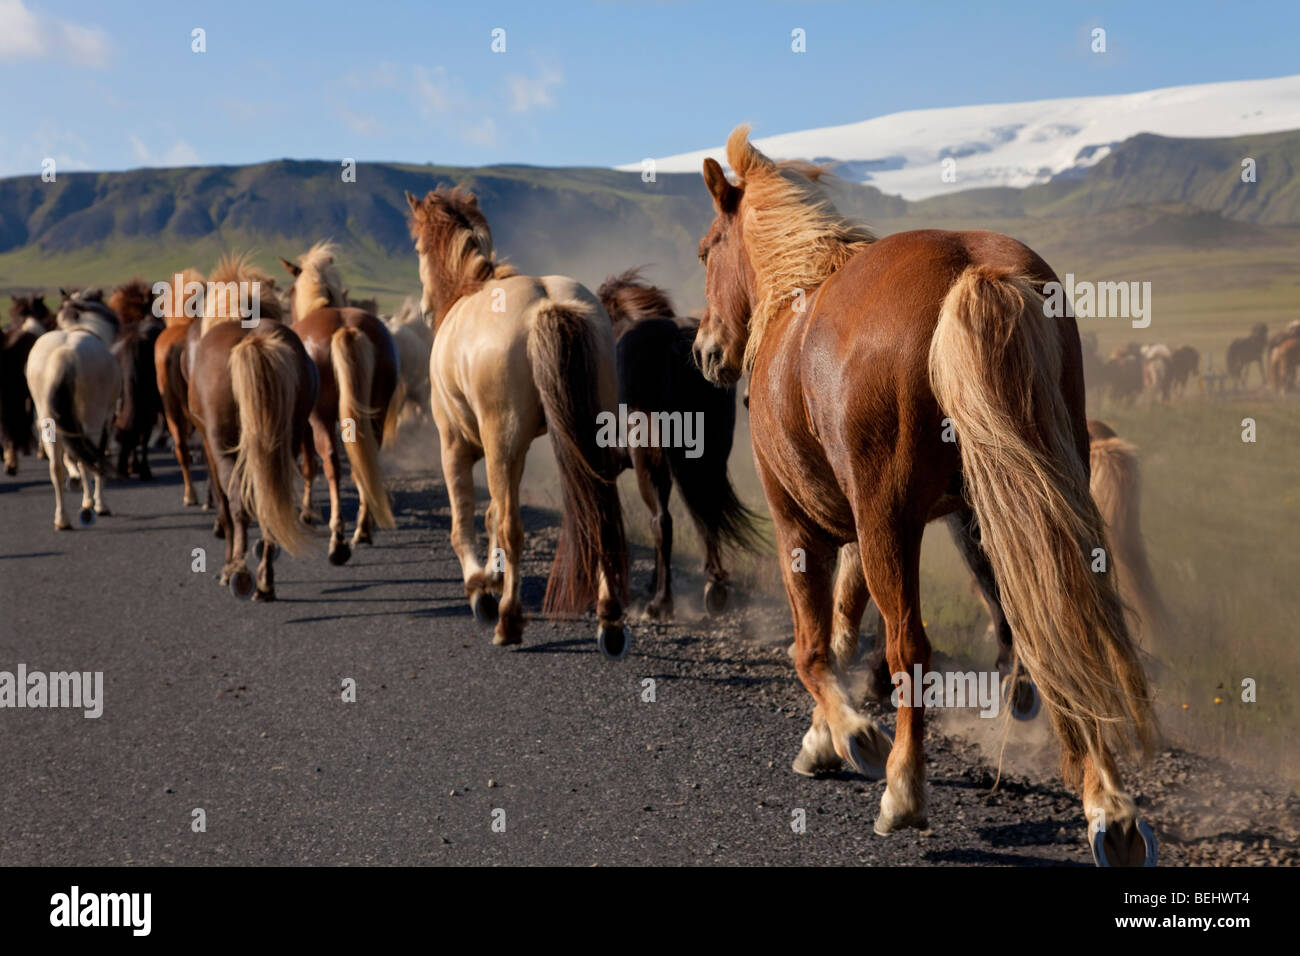 Icelandic horses galloping by the side of a road, illuminated by golden evening light. Shot on location in Iceland. - Stock Image